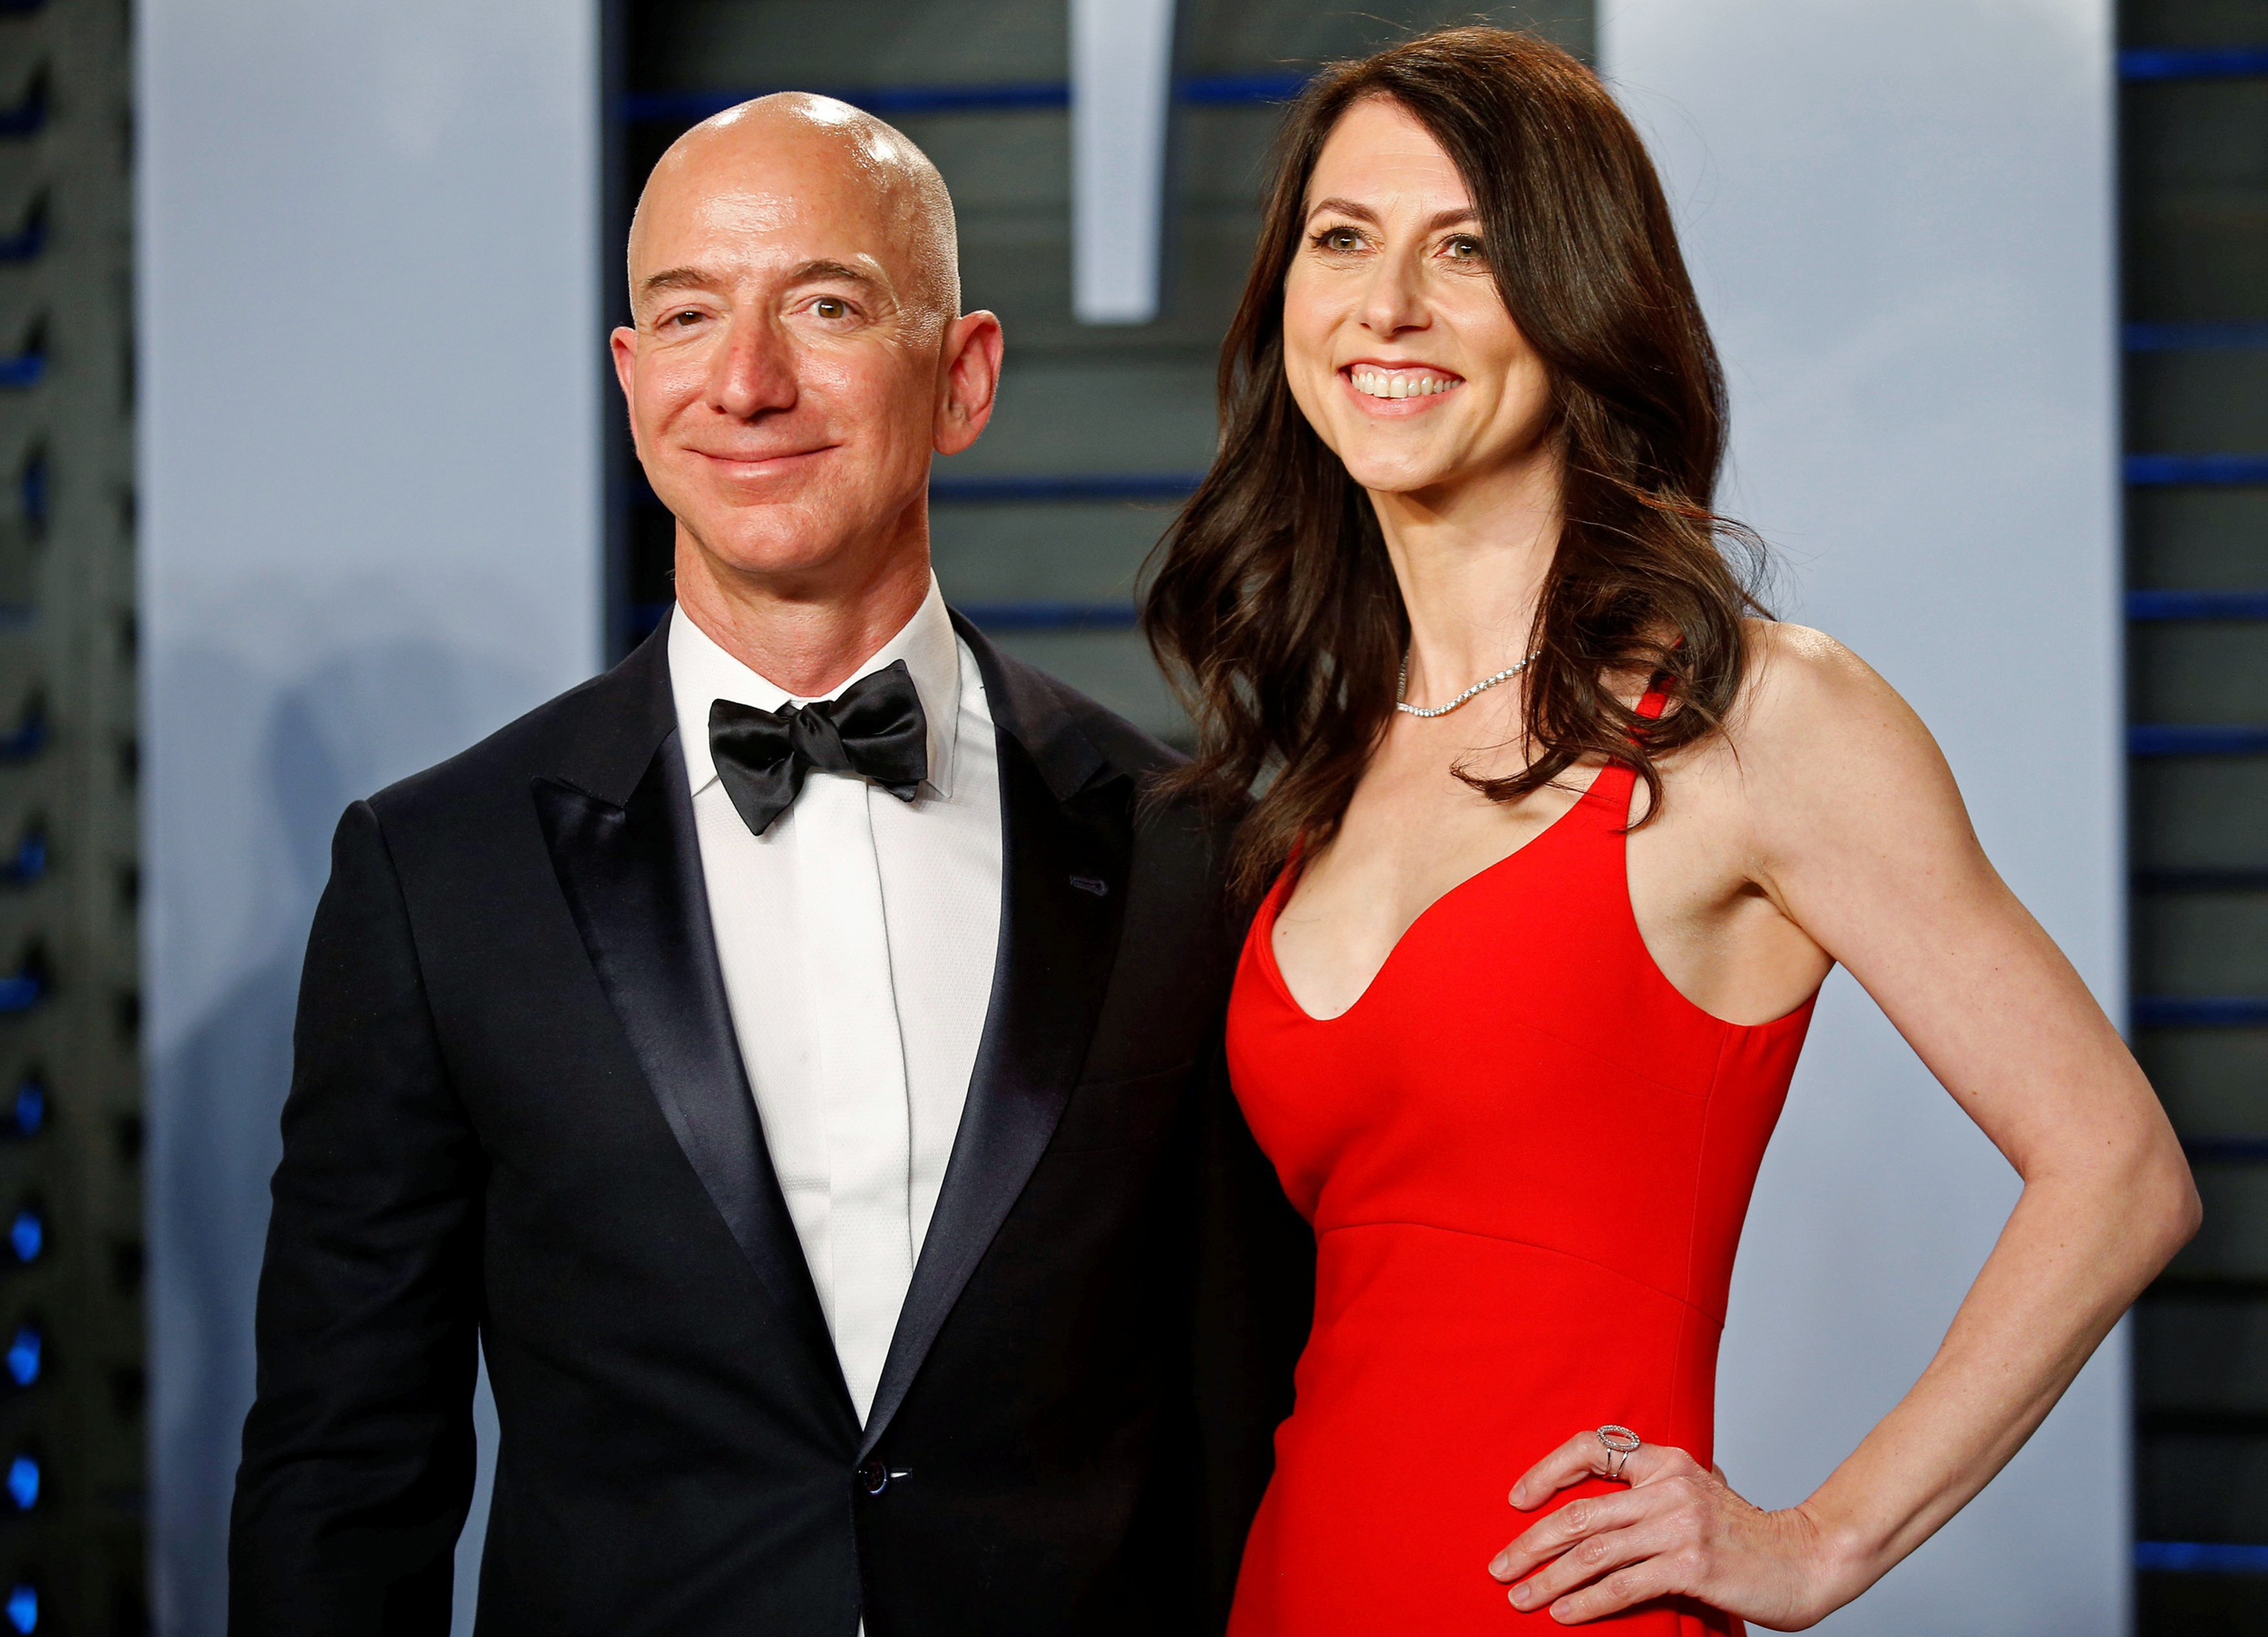 former mrs bezos now richest woman in the world as wall street highs lead to reshuffling of top billionaires former mrs bezos now richest woman in the world as wall street highs lead to reshuffling of top billionaires